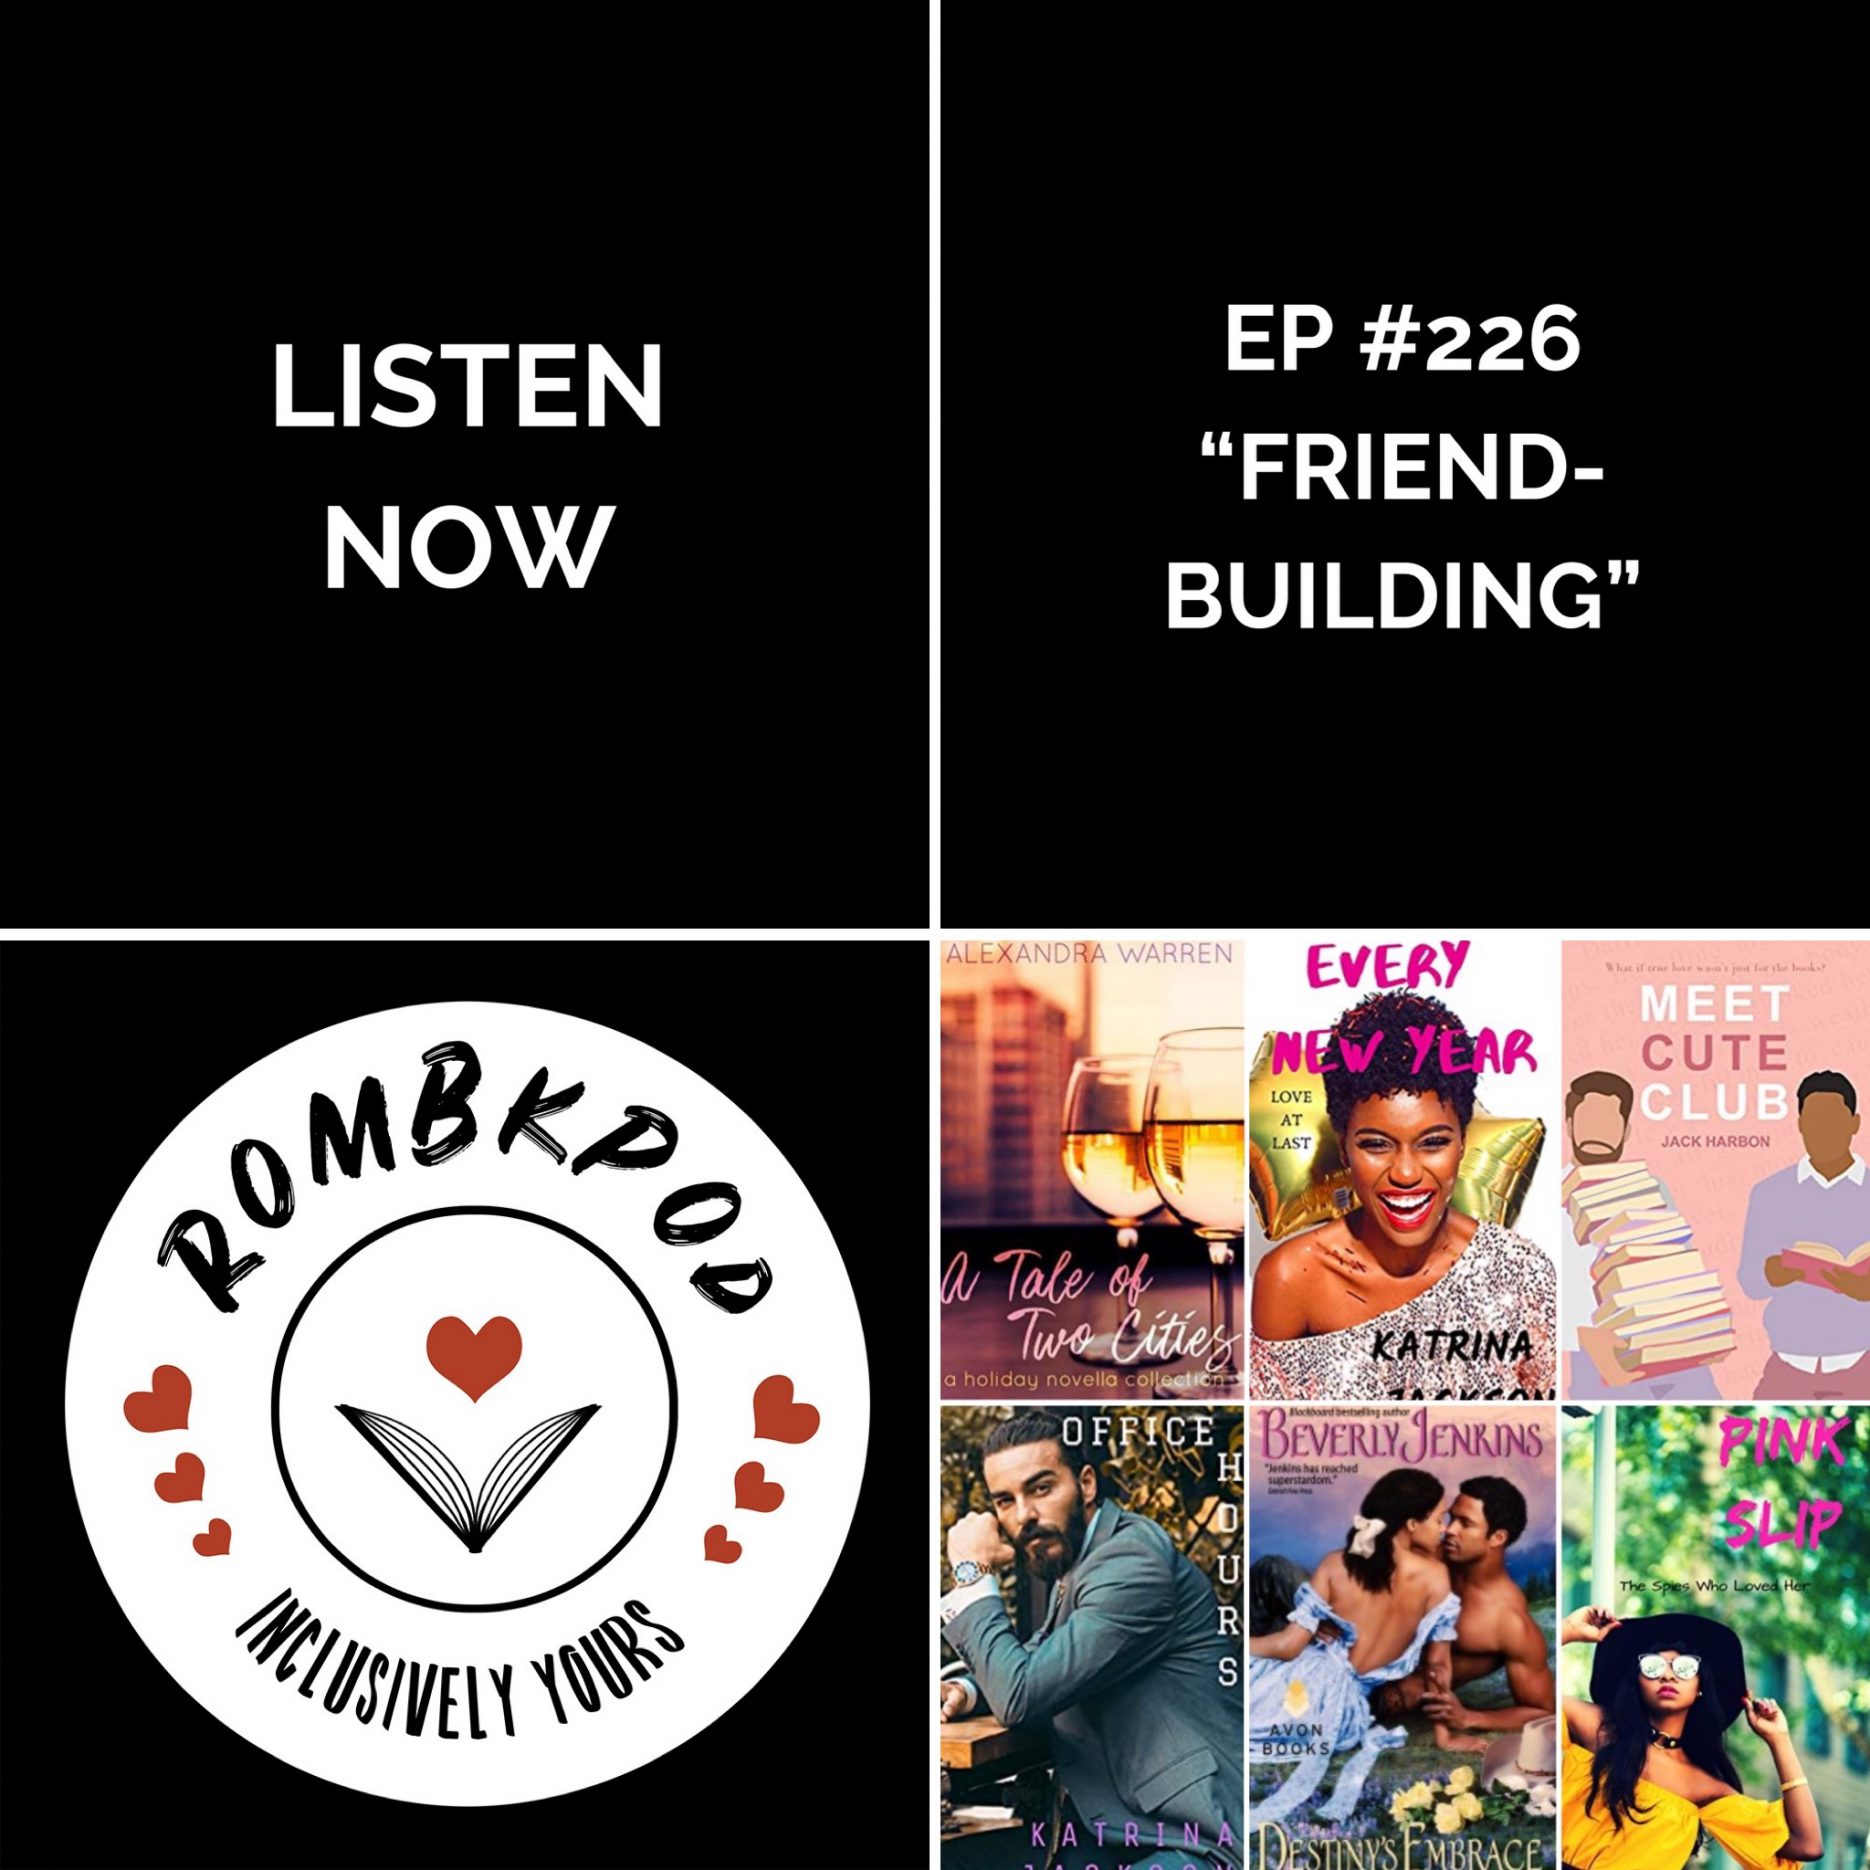 """IMAGE: lower left corner, RomBkPod heart logo; lower right corner, ep #226 book cover collage; IMAGE TEXT: Listen Now, ep #226 """"Friend-Building"""""""